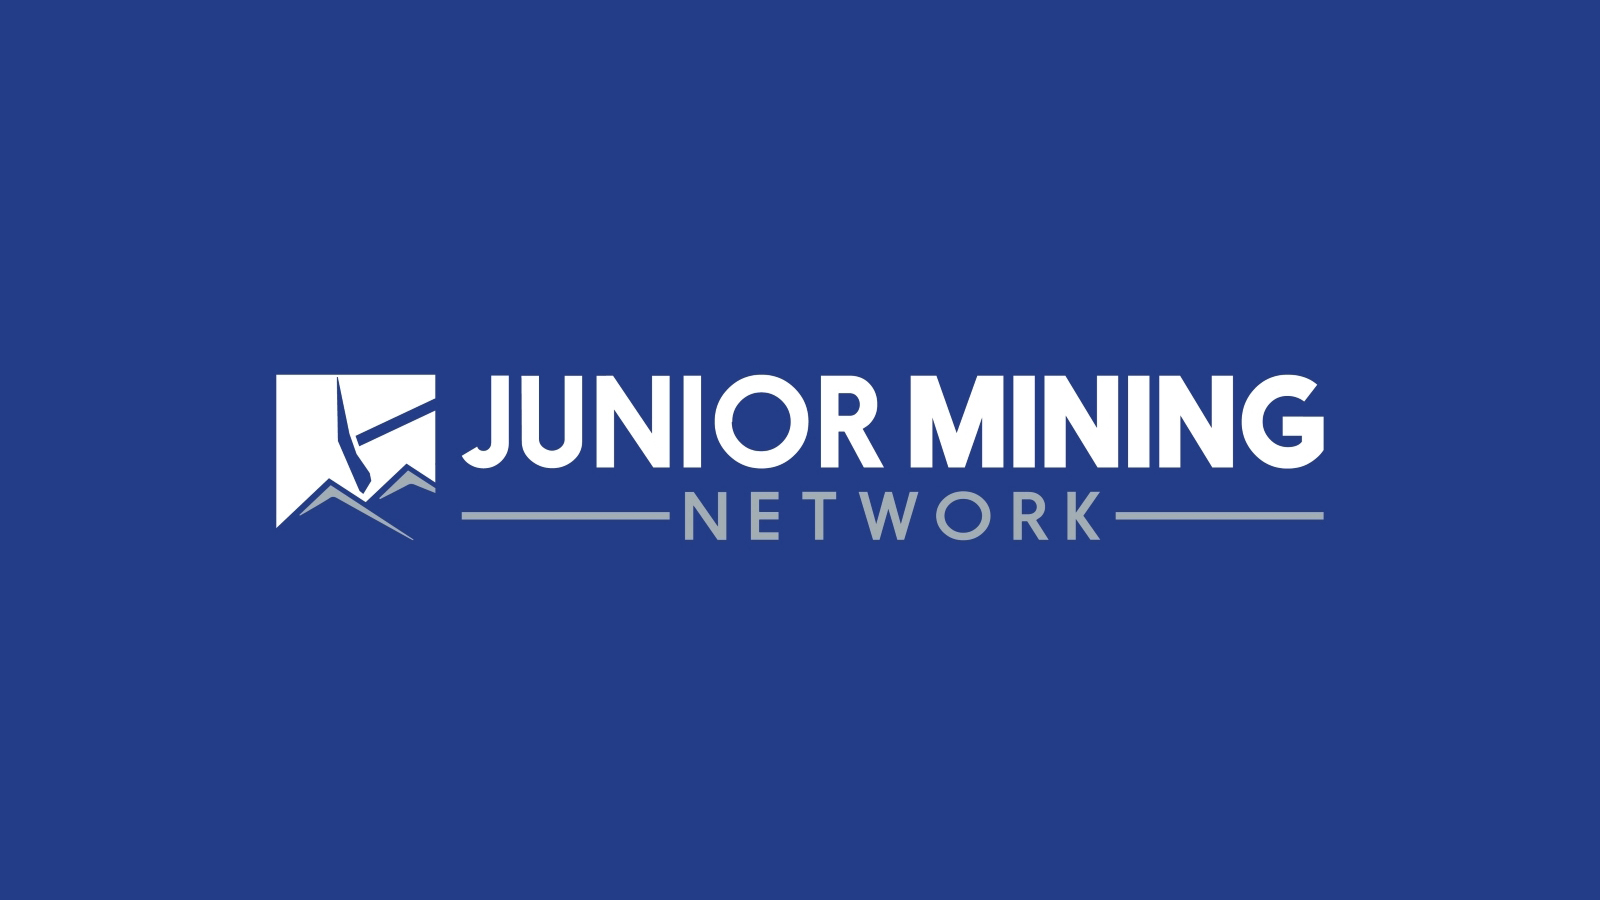 drills-turning-for-alpha-minerals-winter-program-at-patterson-lake-south